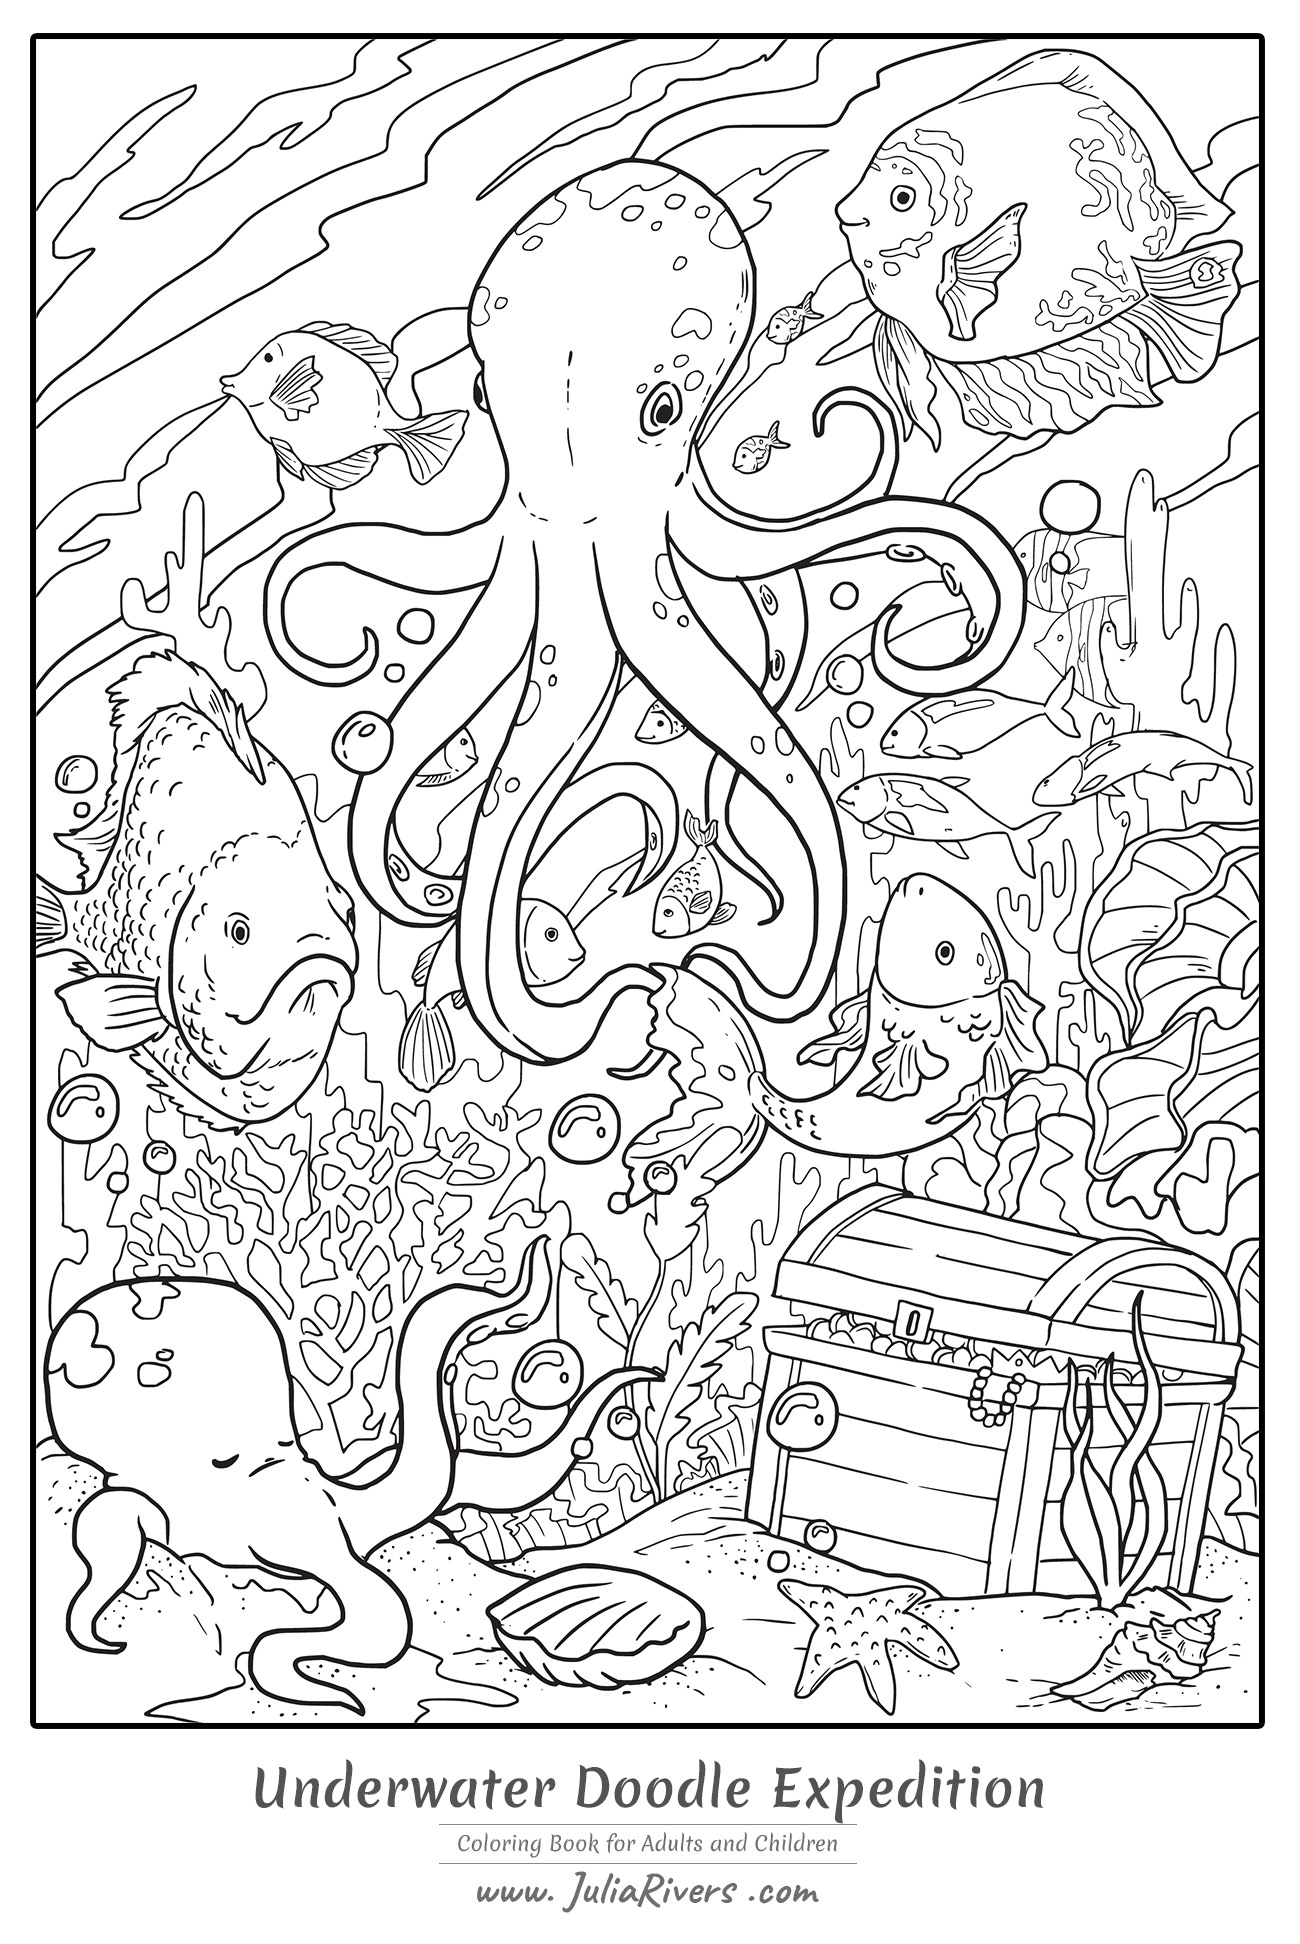 Underwater Coloring Page : underwater, coloring, Underwater, Doodle, Expedition, Water, Worlds, Adult, Coloring, Pages